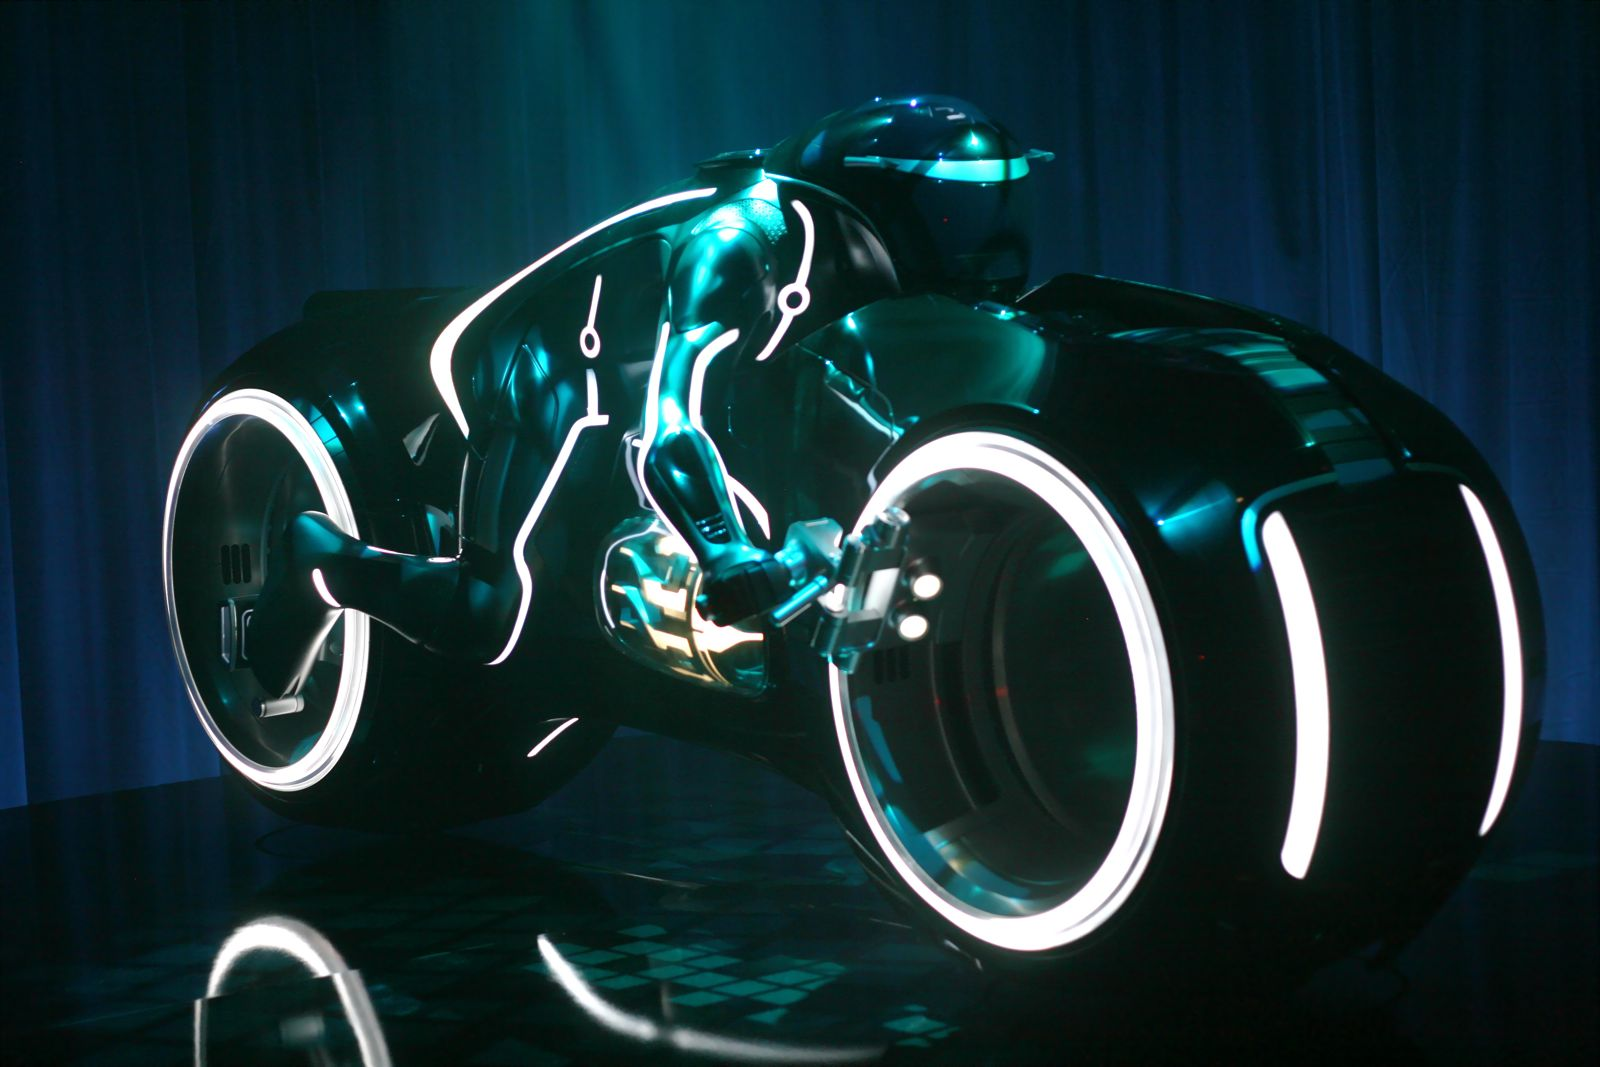 Tron - The Bike Based On Walt Disney Production